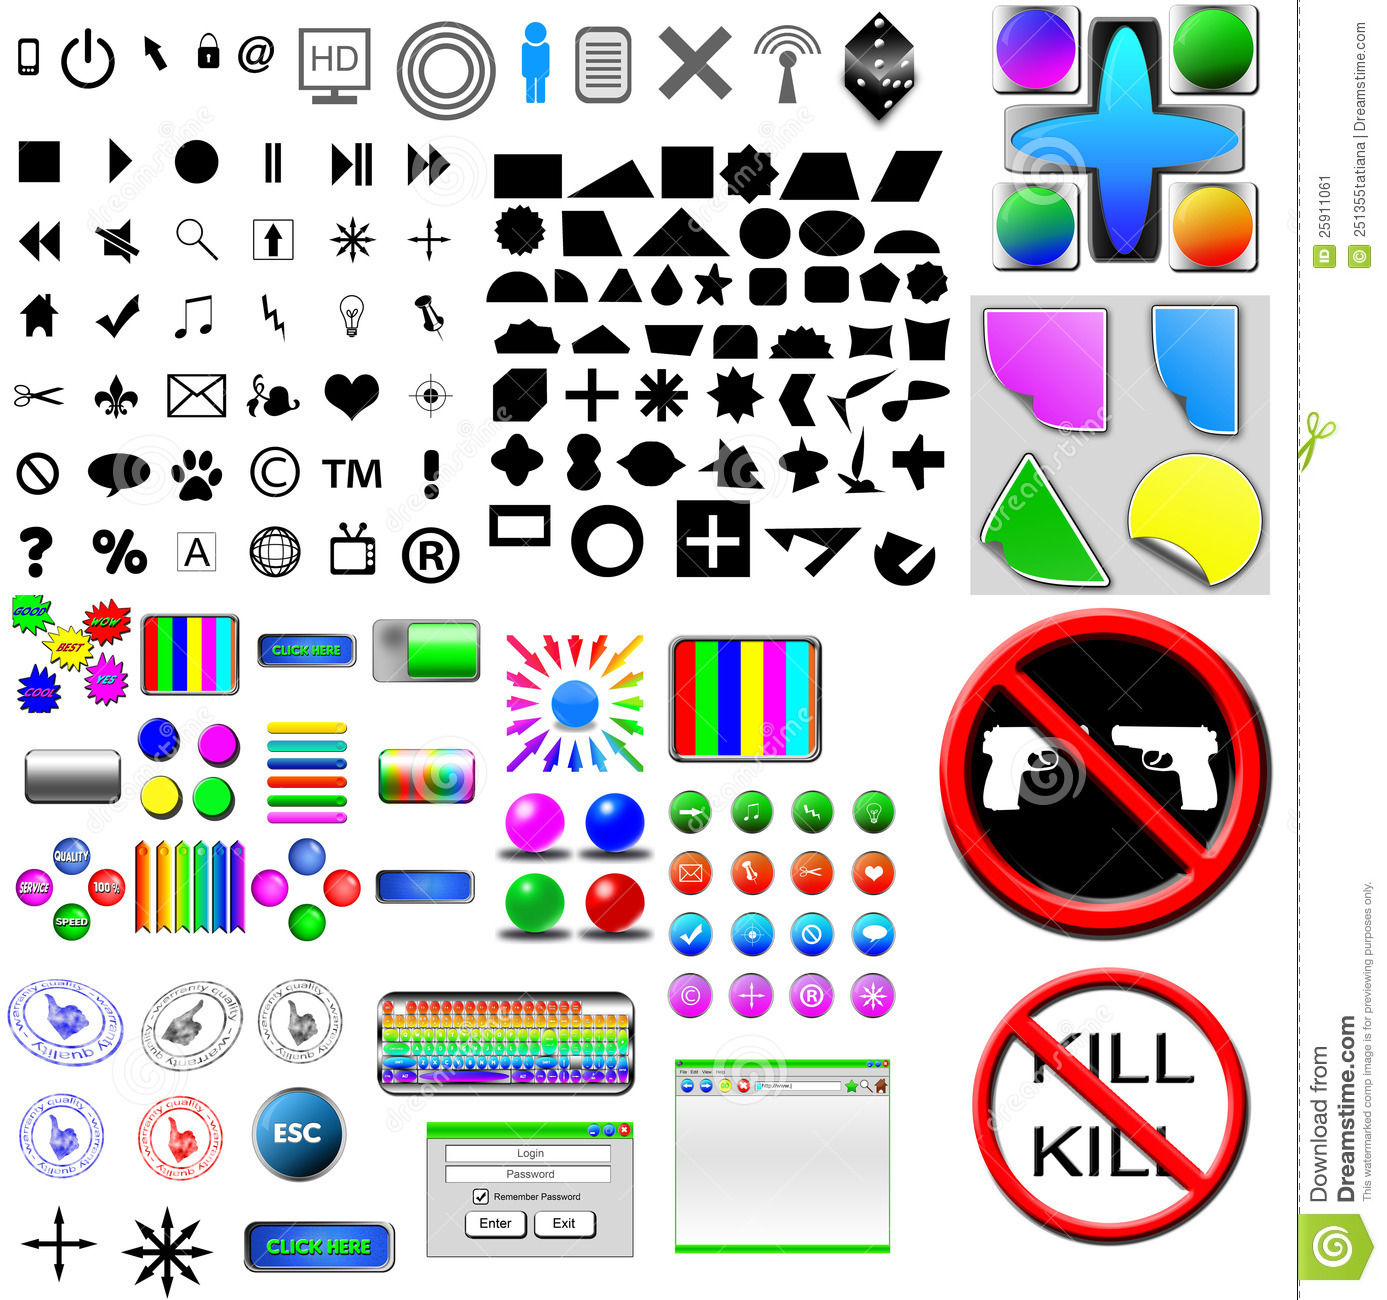 8 Computer Icons And Buttons Images